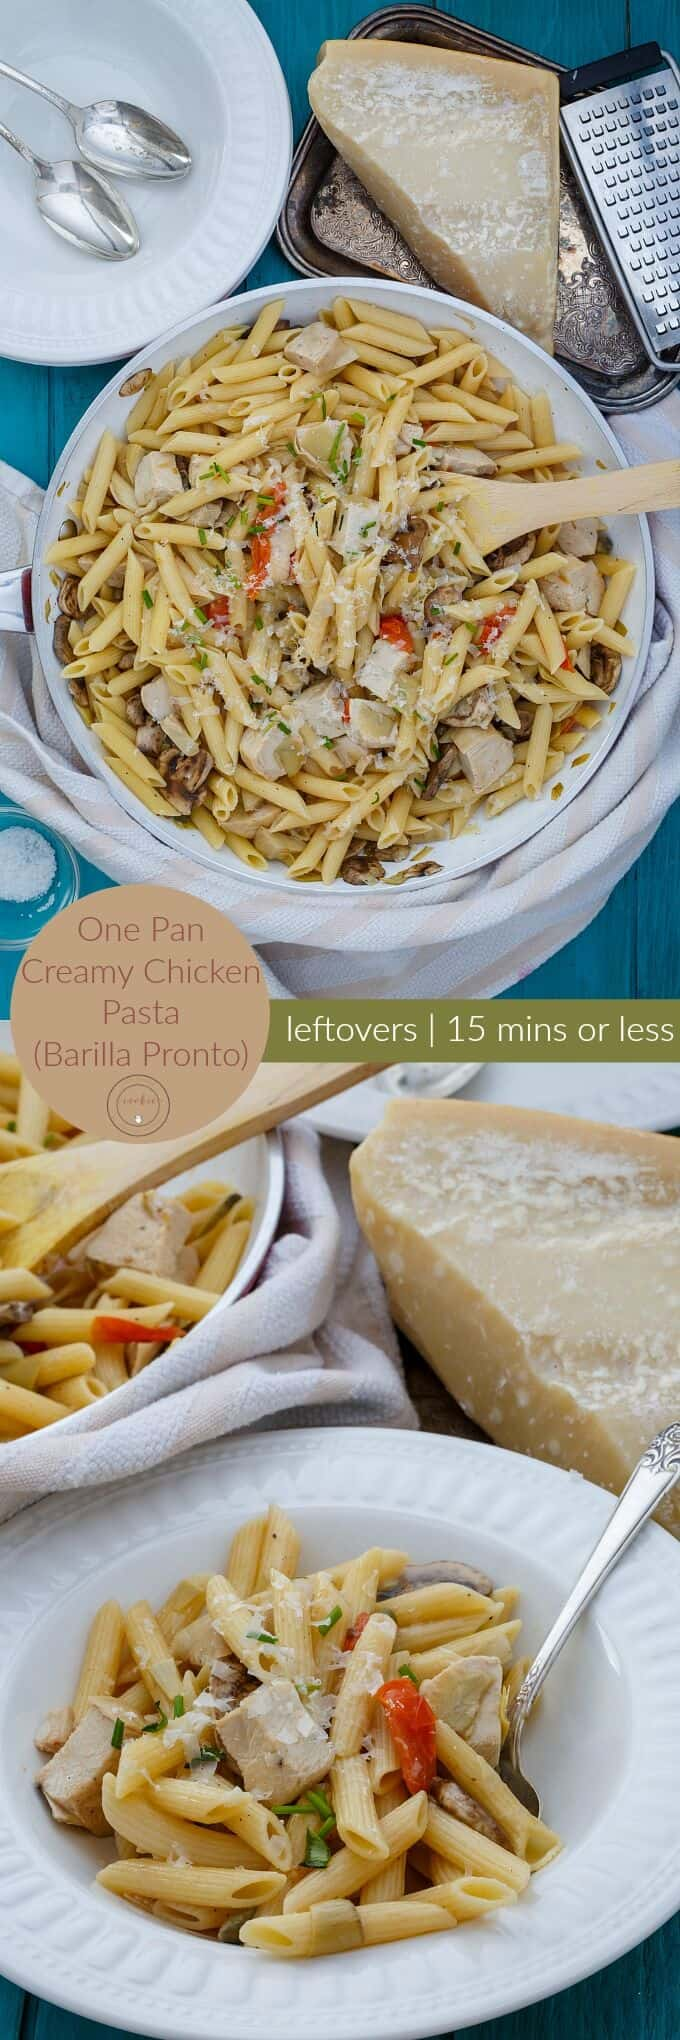 One Pan Creamy Chicken Pasta (Barilla Pronto)